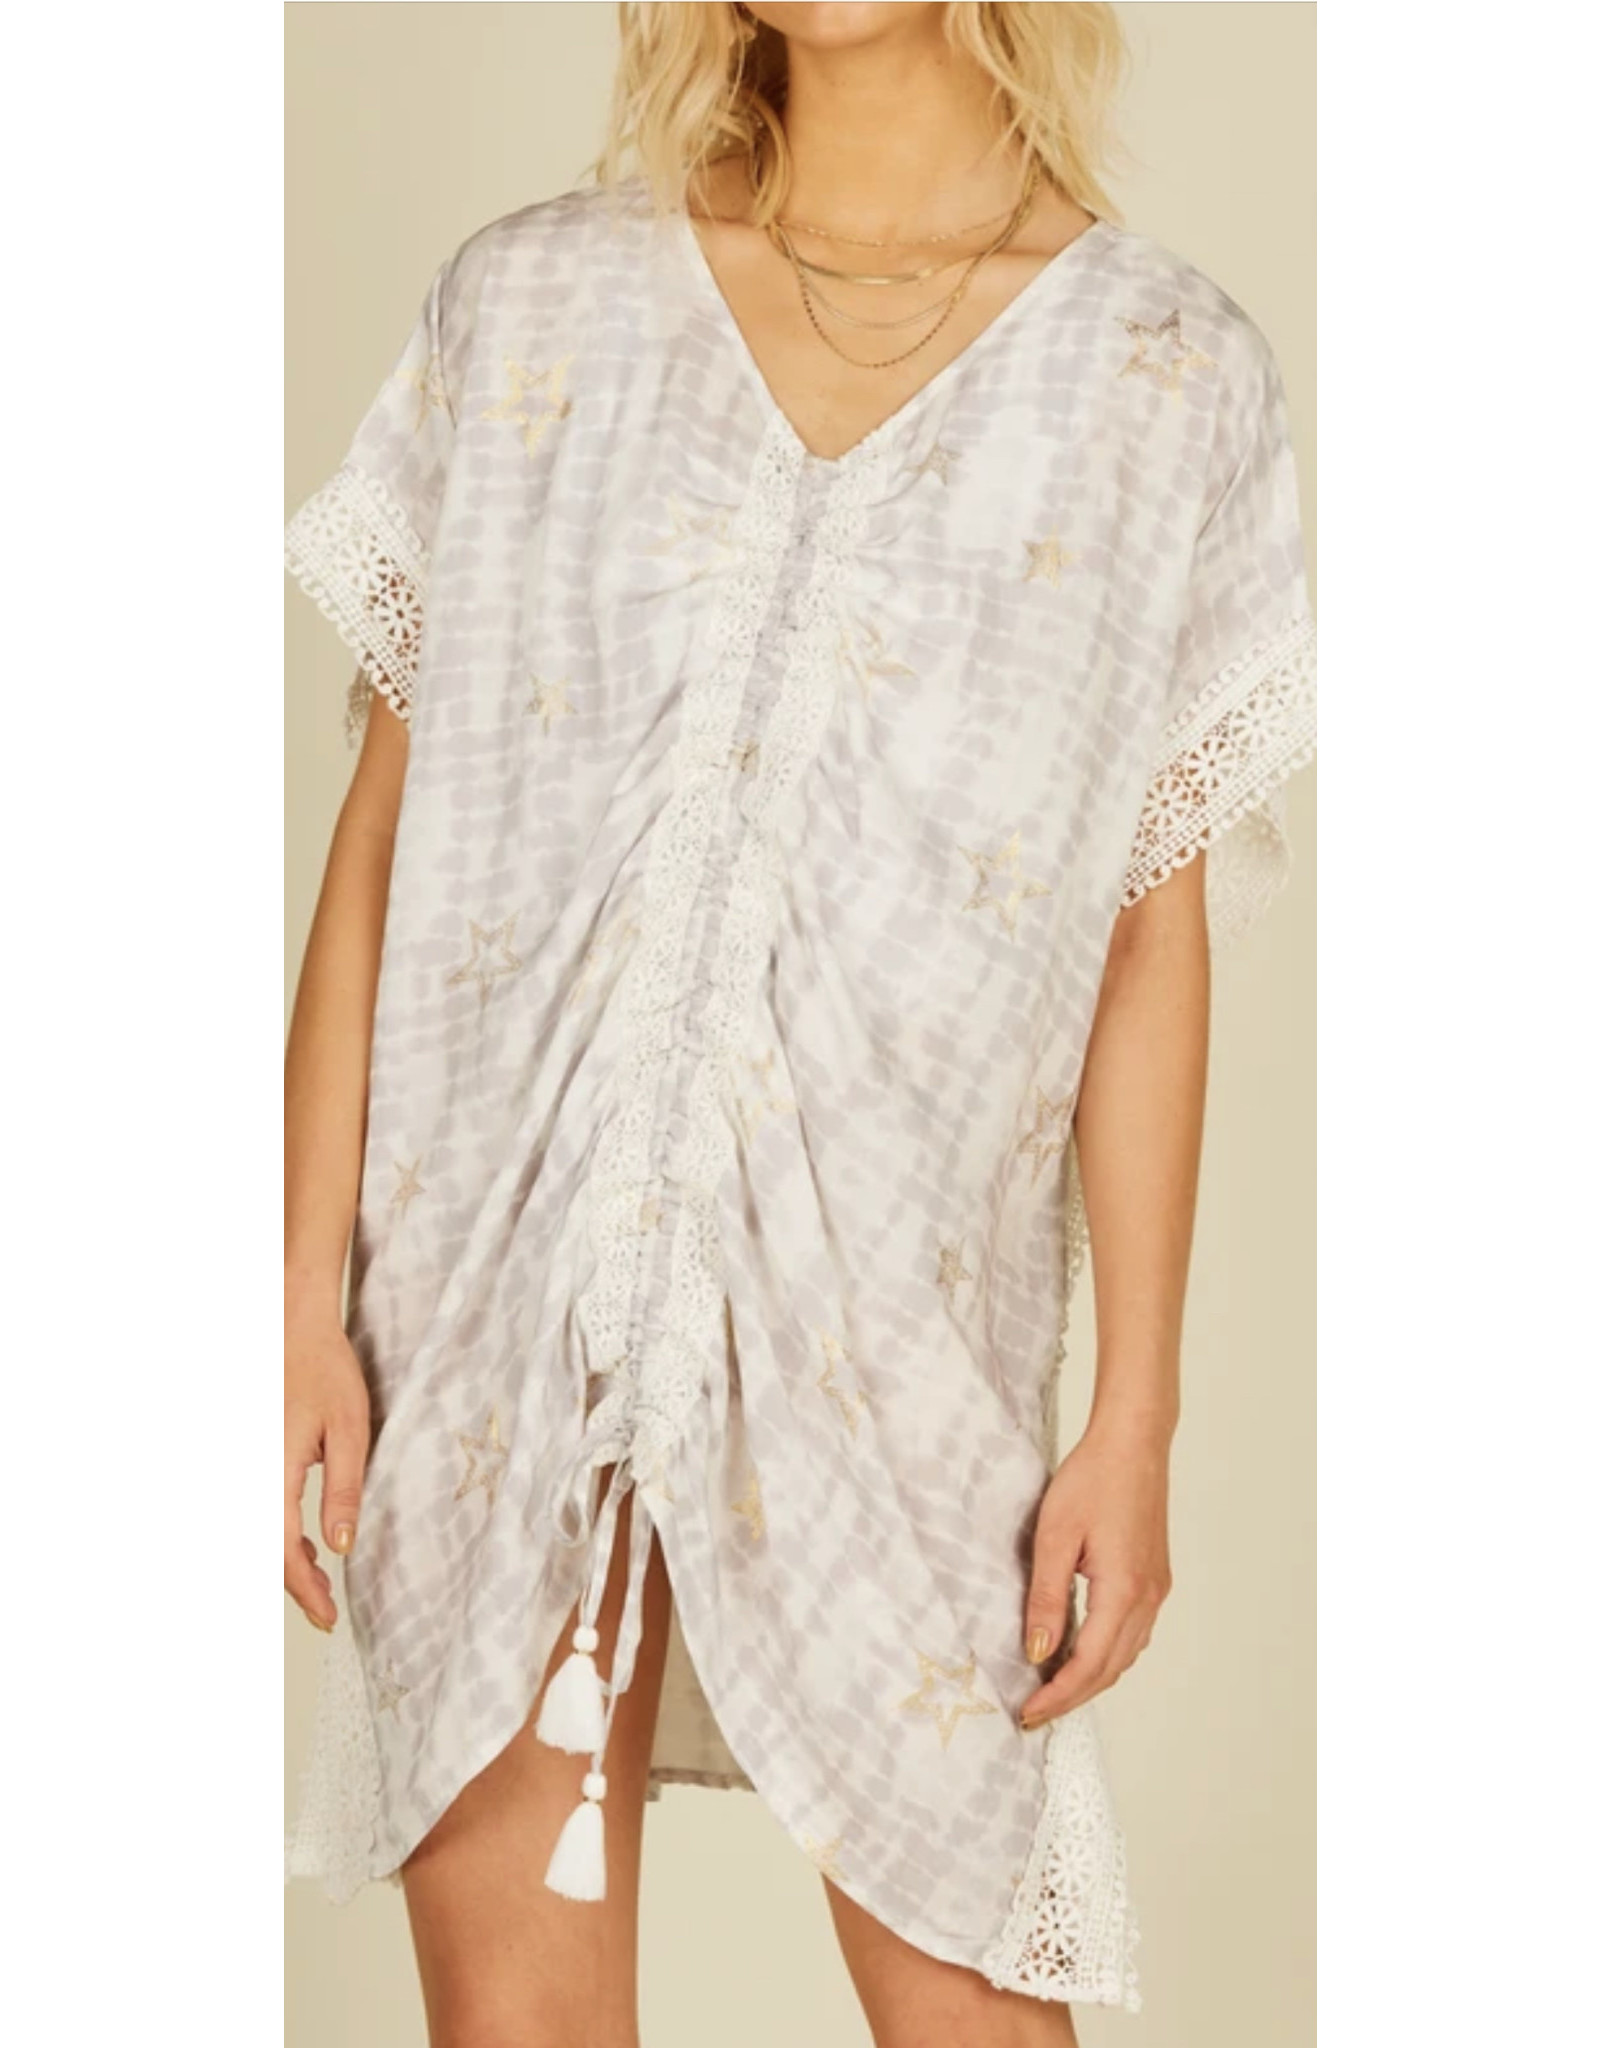 SURF GYPSY TIE DYE COVER UP WITH METALLIC STARS